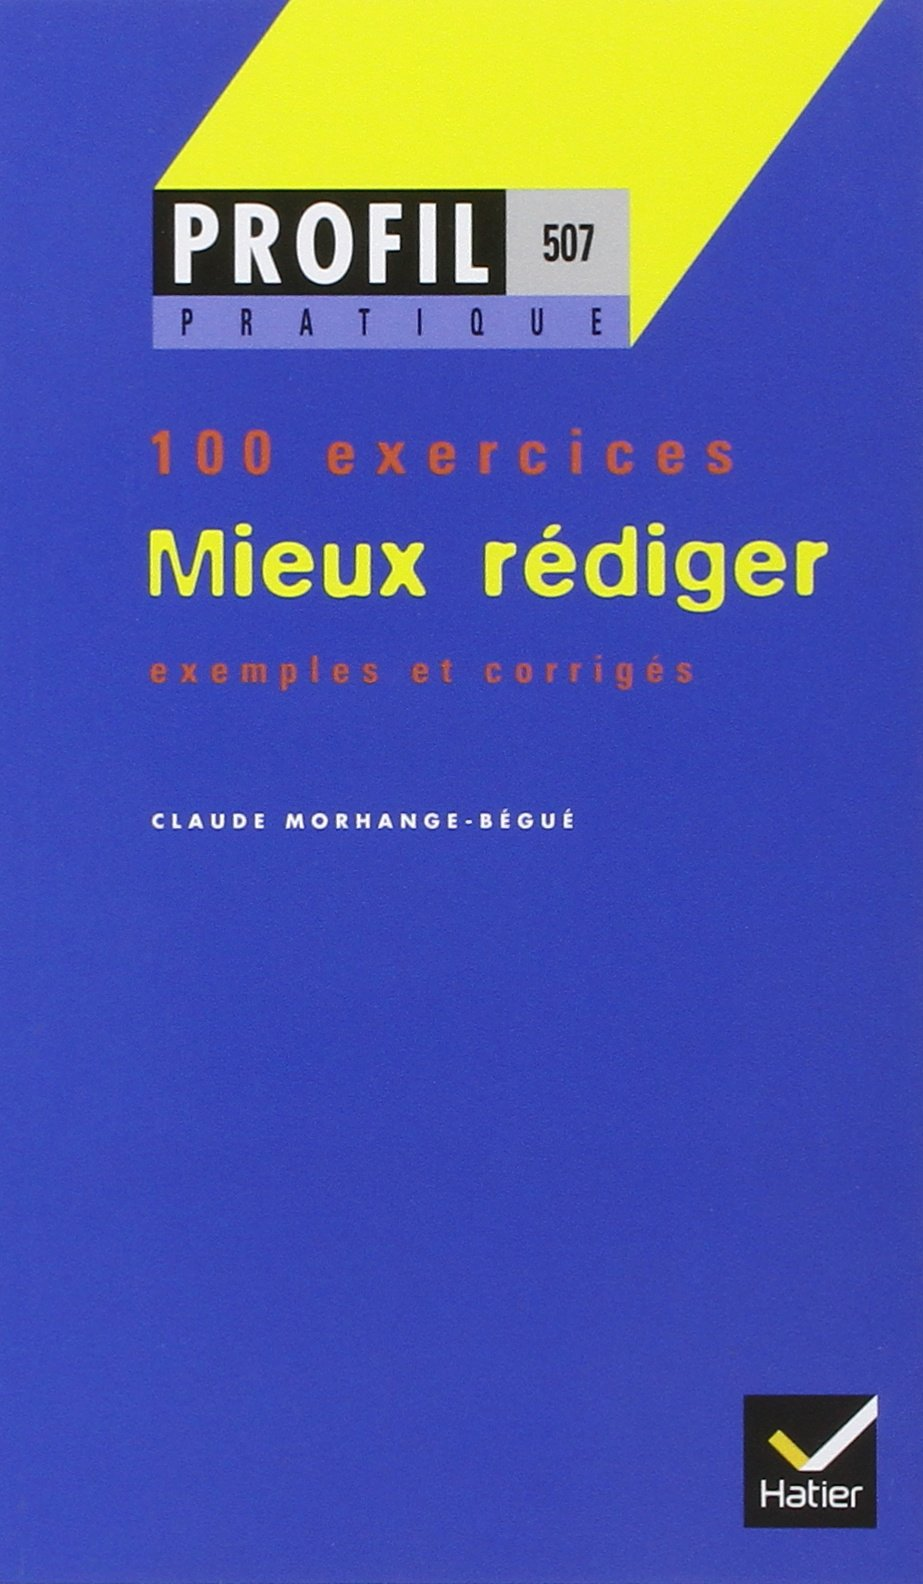 Mieux rédiger - 100 exercices Poche – 2000 C. Morhange-Begue Editions Hatier 2218711567 NU-GRD-04766506